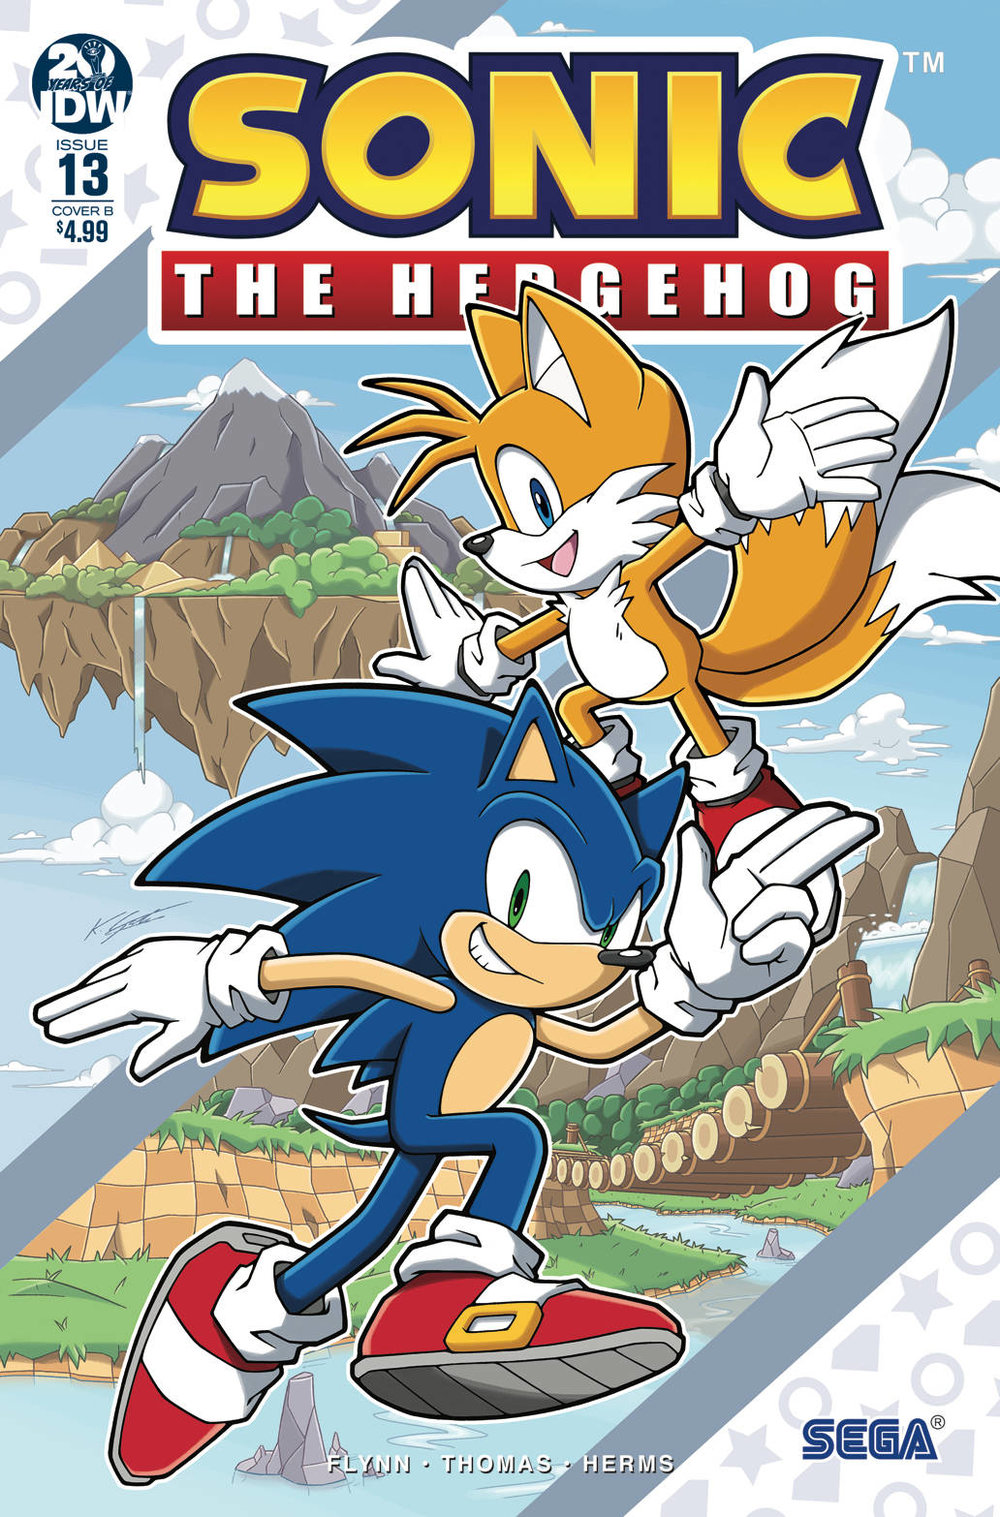 SONIC THE HEDGEHOG 13 CVR B GATES.jpg